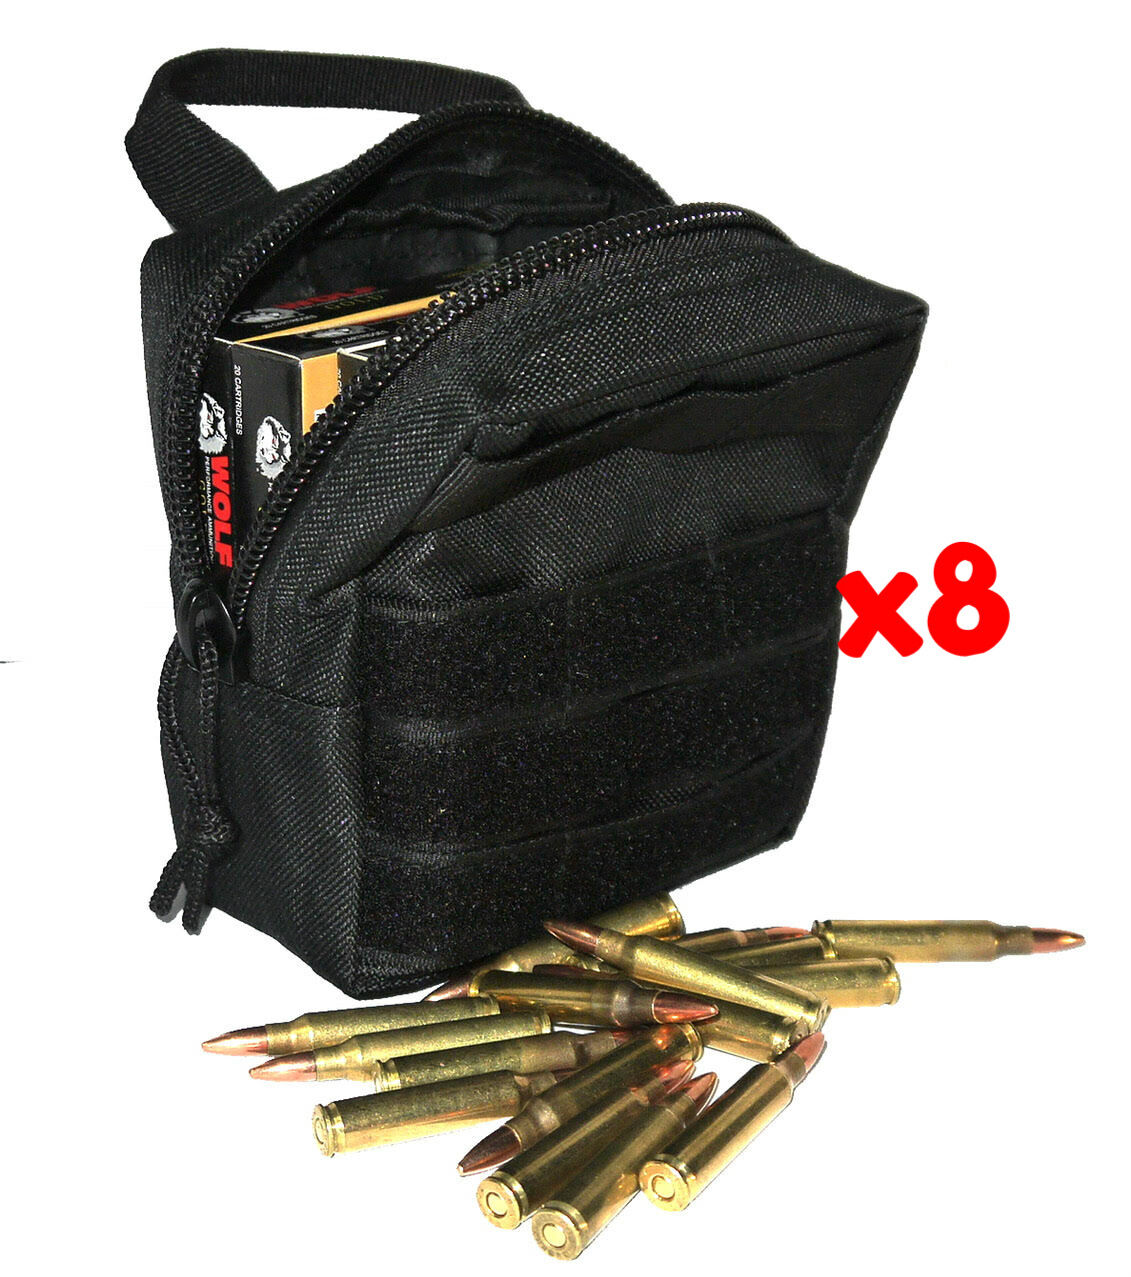 (8) .308 AMMO MODULAR MOLLE UTILITY POUCHES FRONT HOOK LOOP STRAP .308 NATO 308